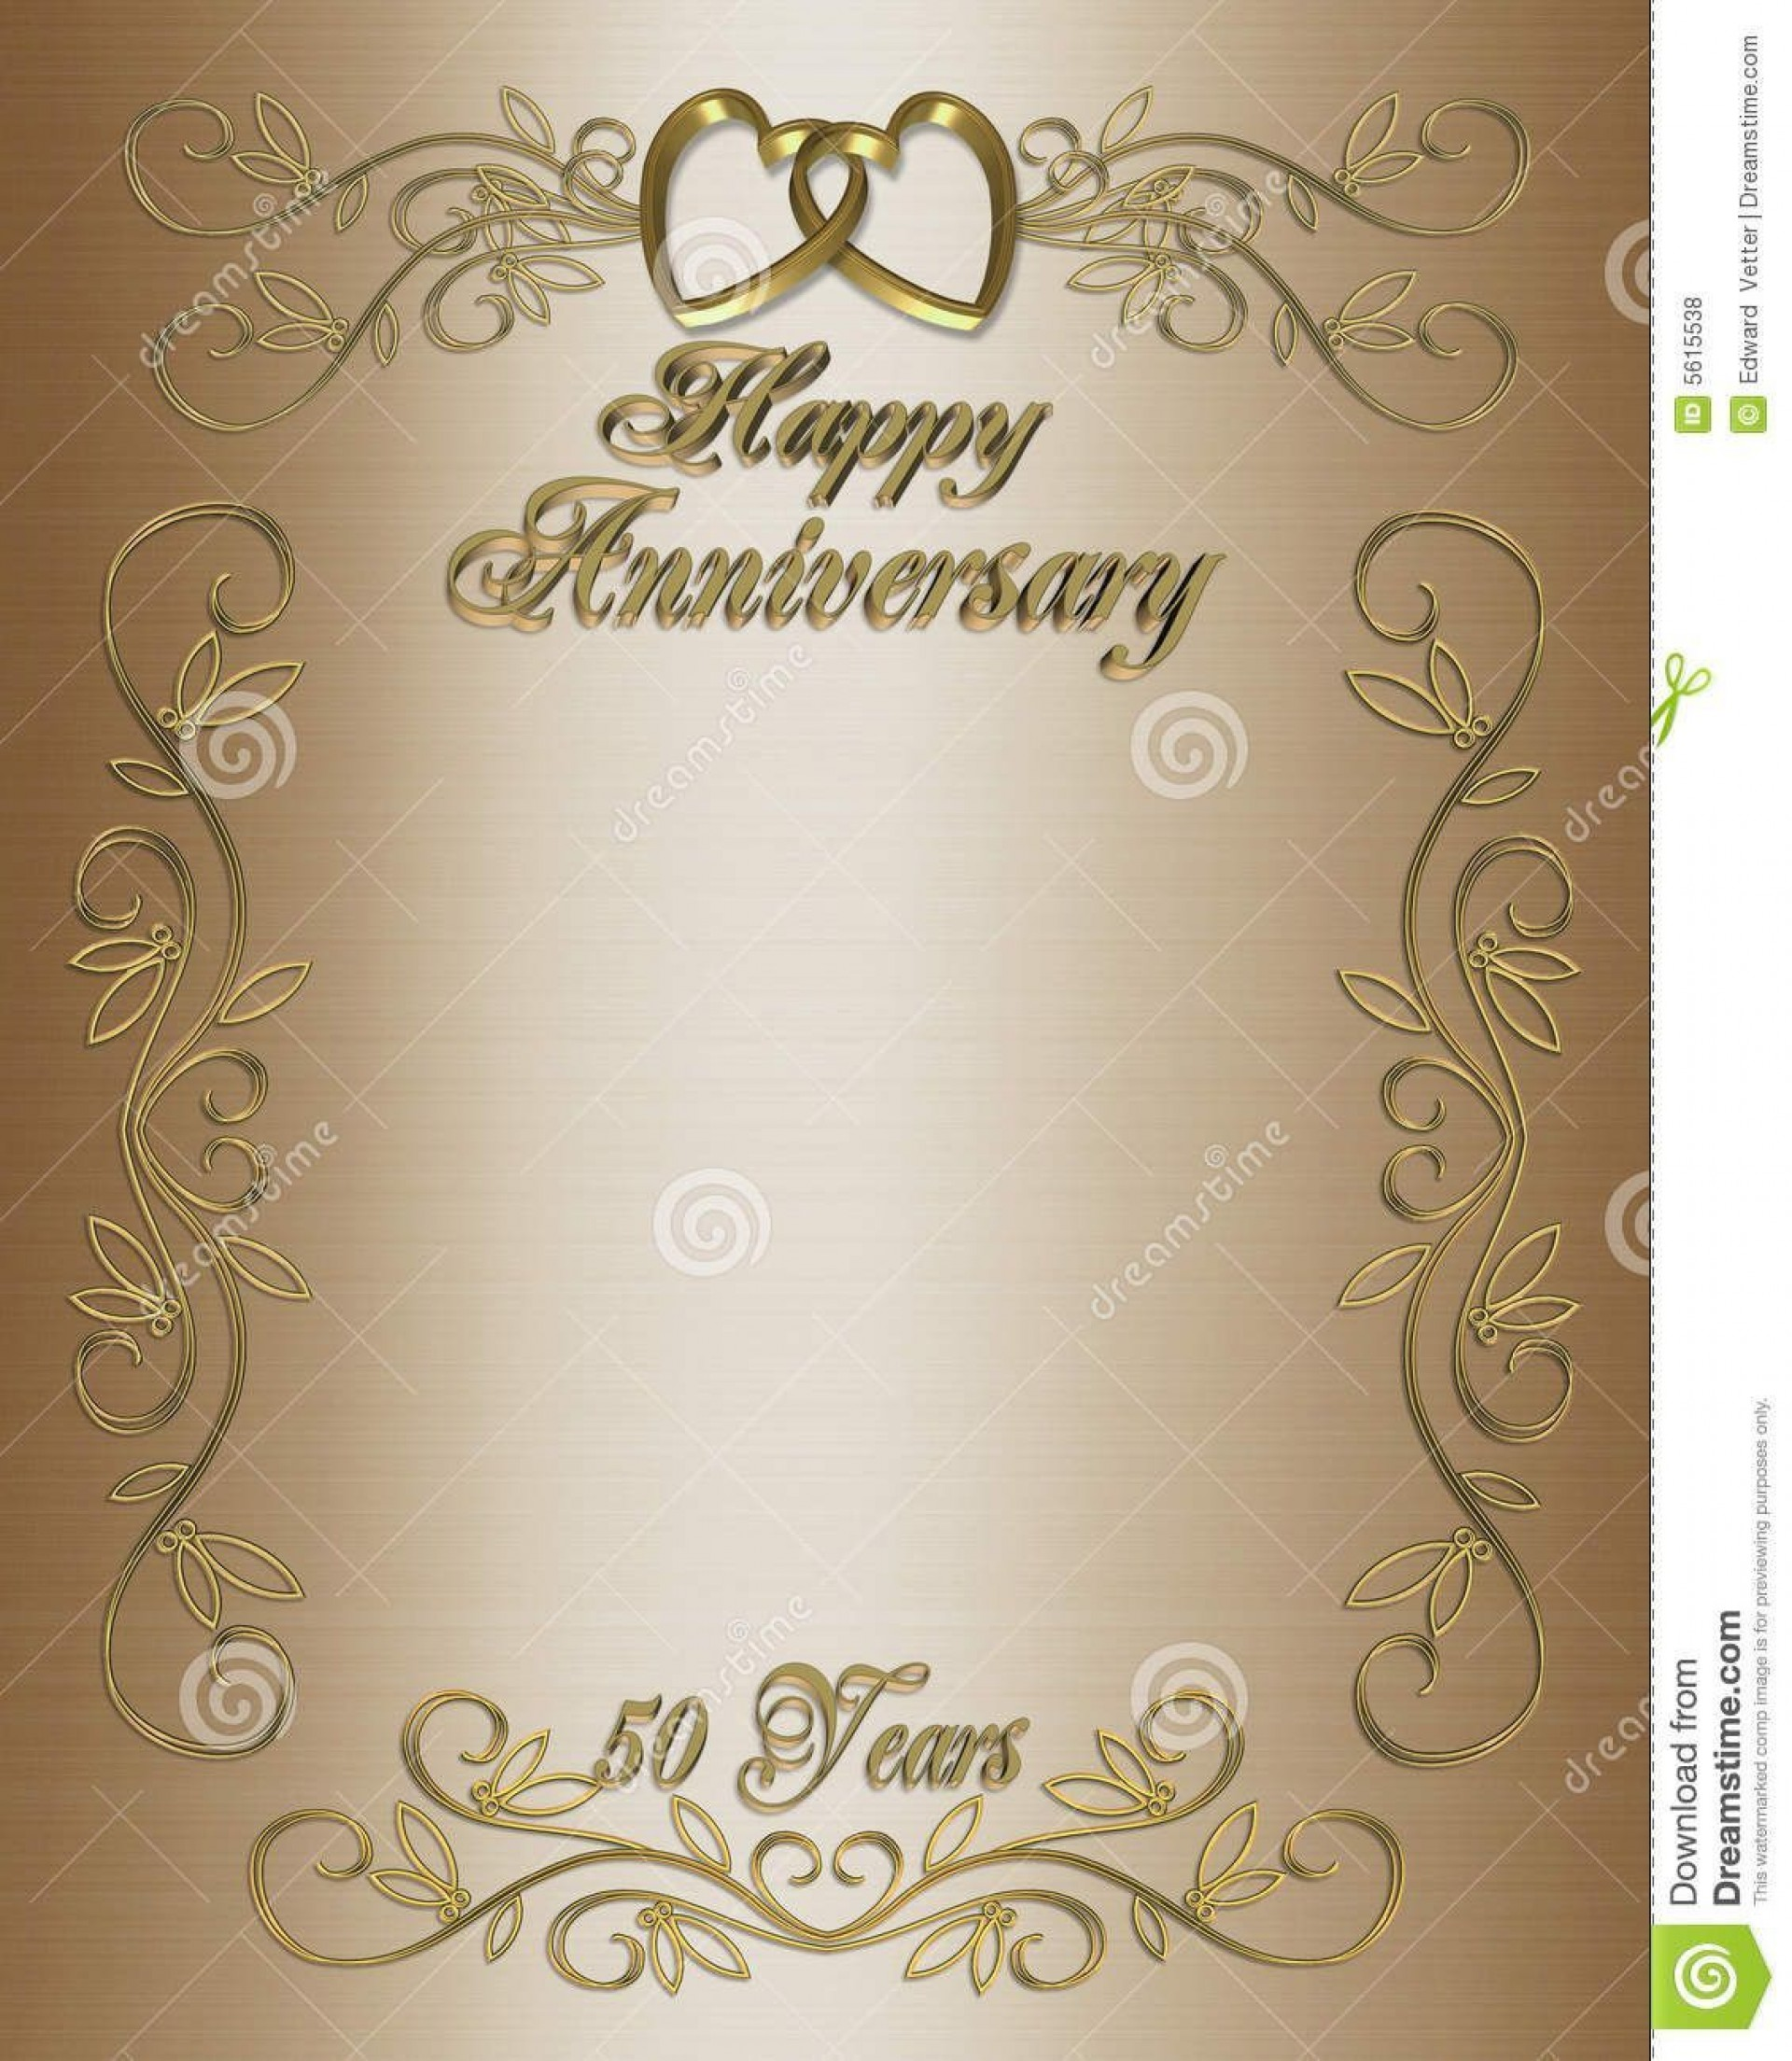 007 Amazing 50th Anniversary Party Invitation Template Picture  Templates Golden Wedding Uk Microsoft Word Free1920